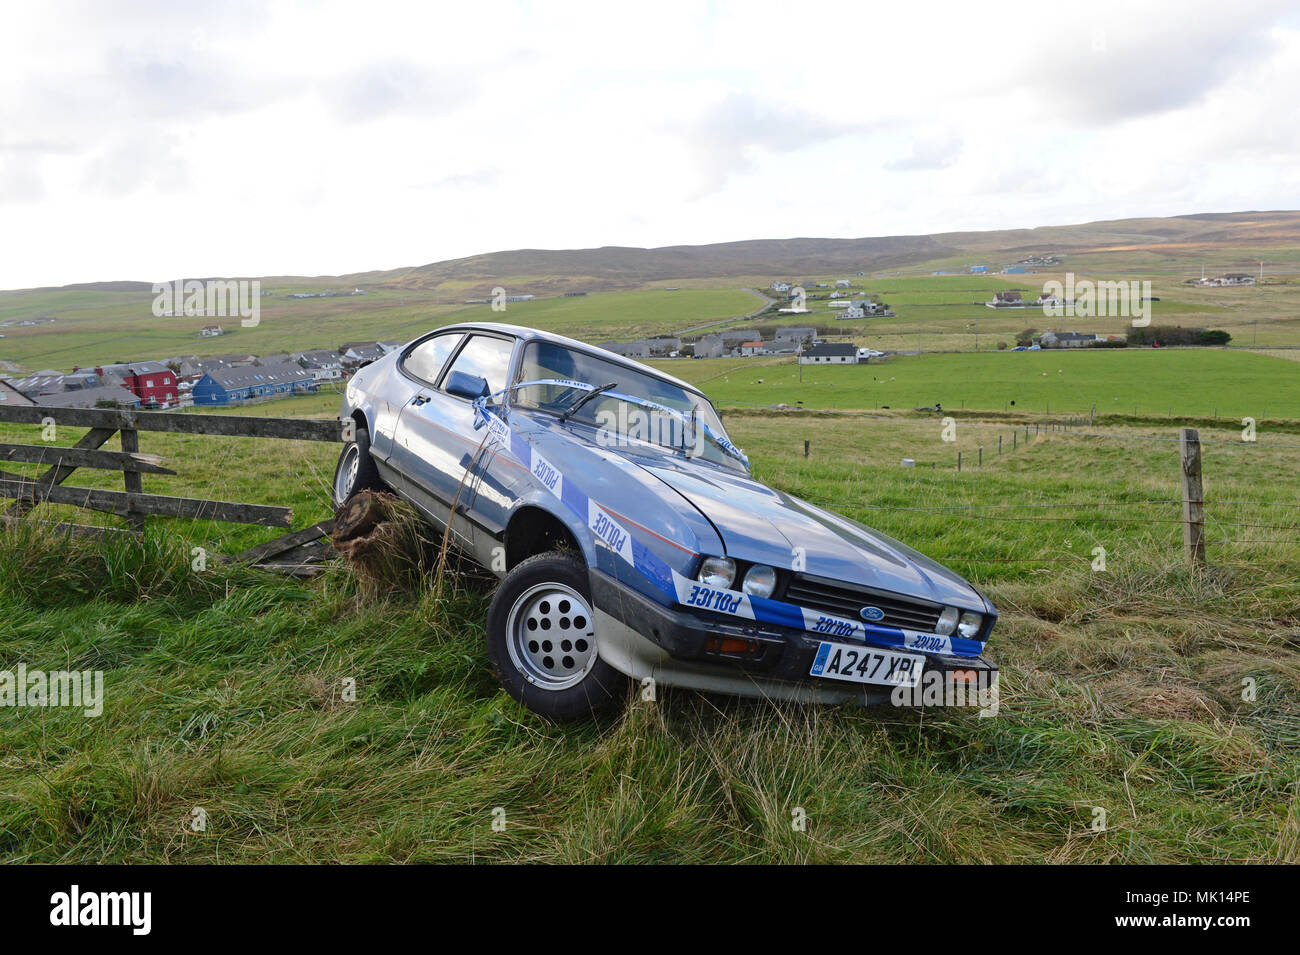 Damaged Ford Stock Photos & Damaged Ford Stock Images - Alamy